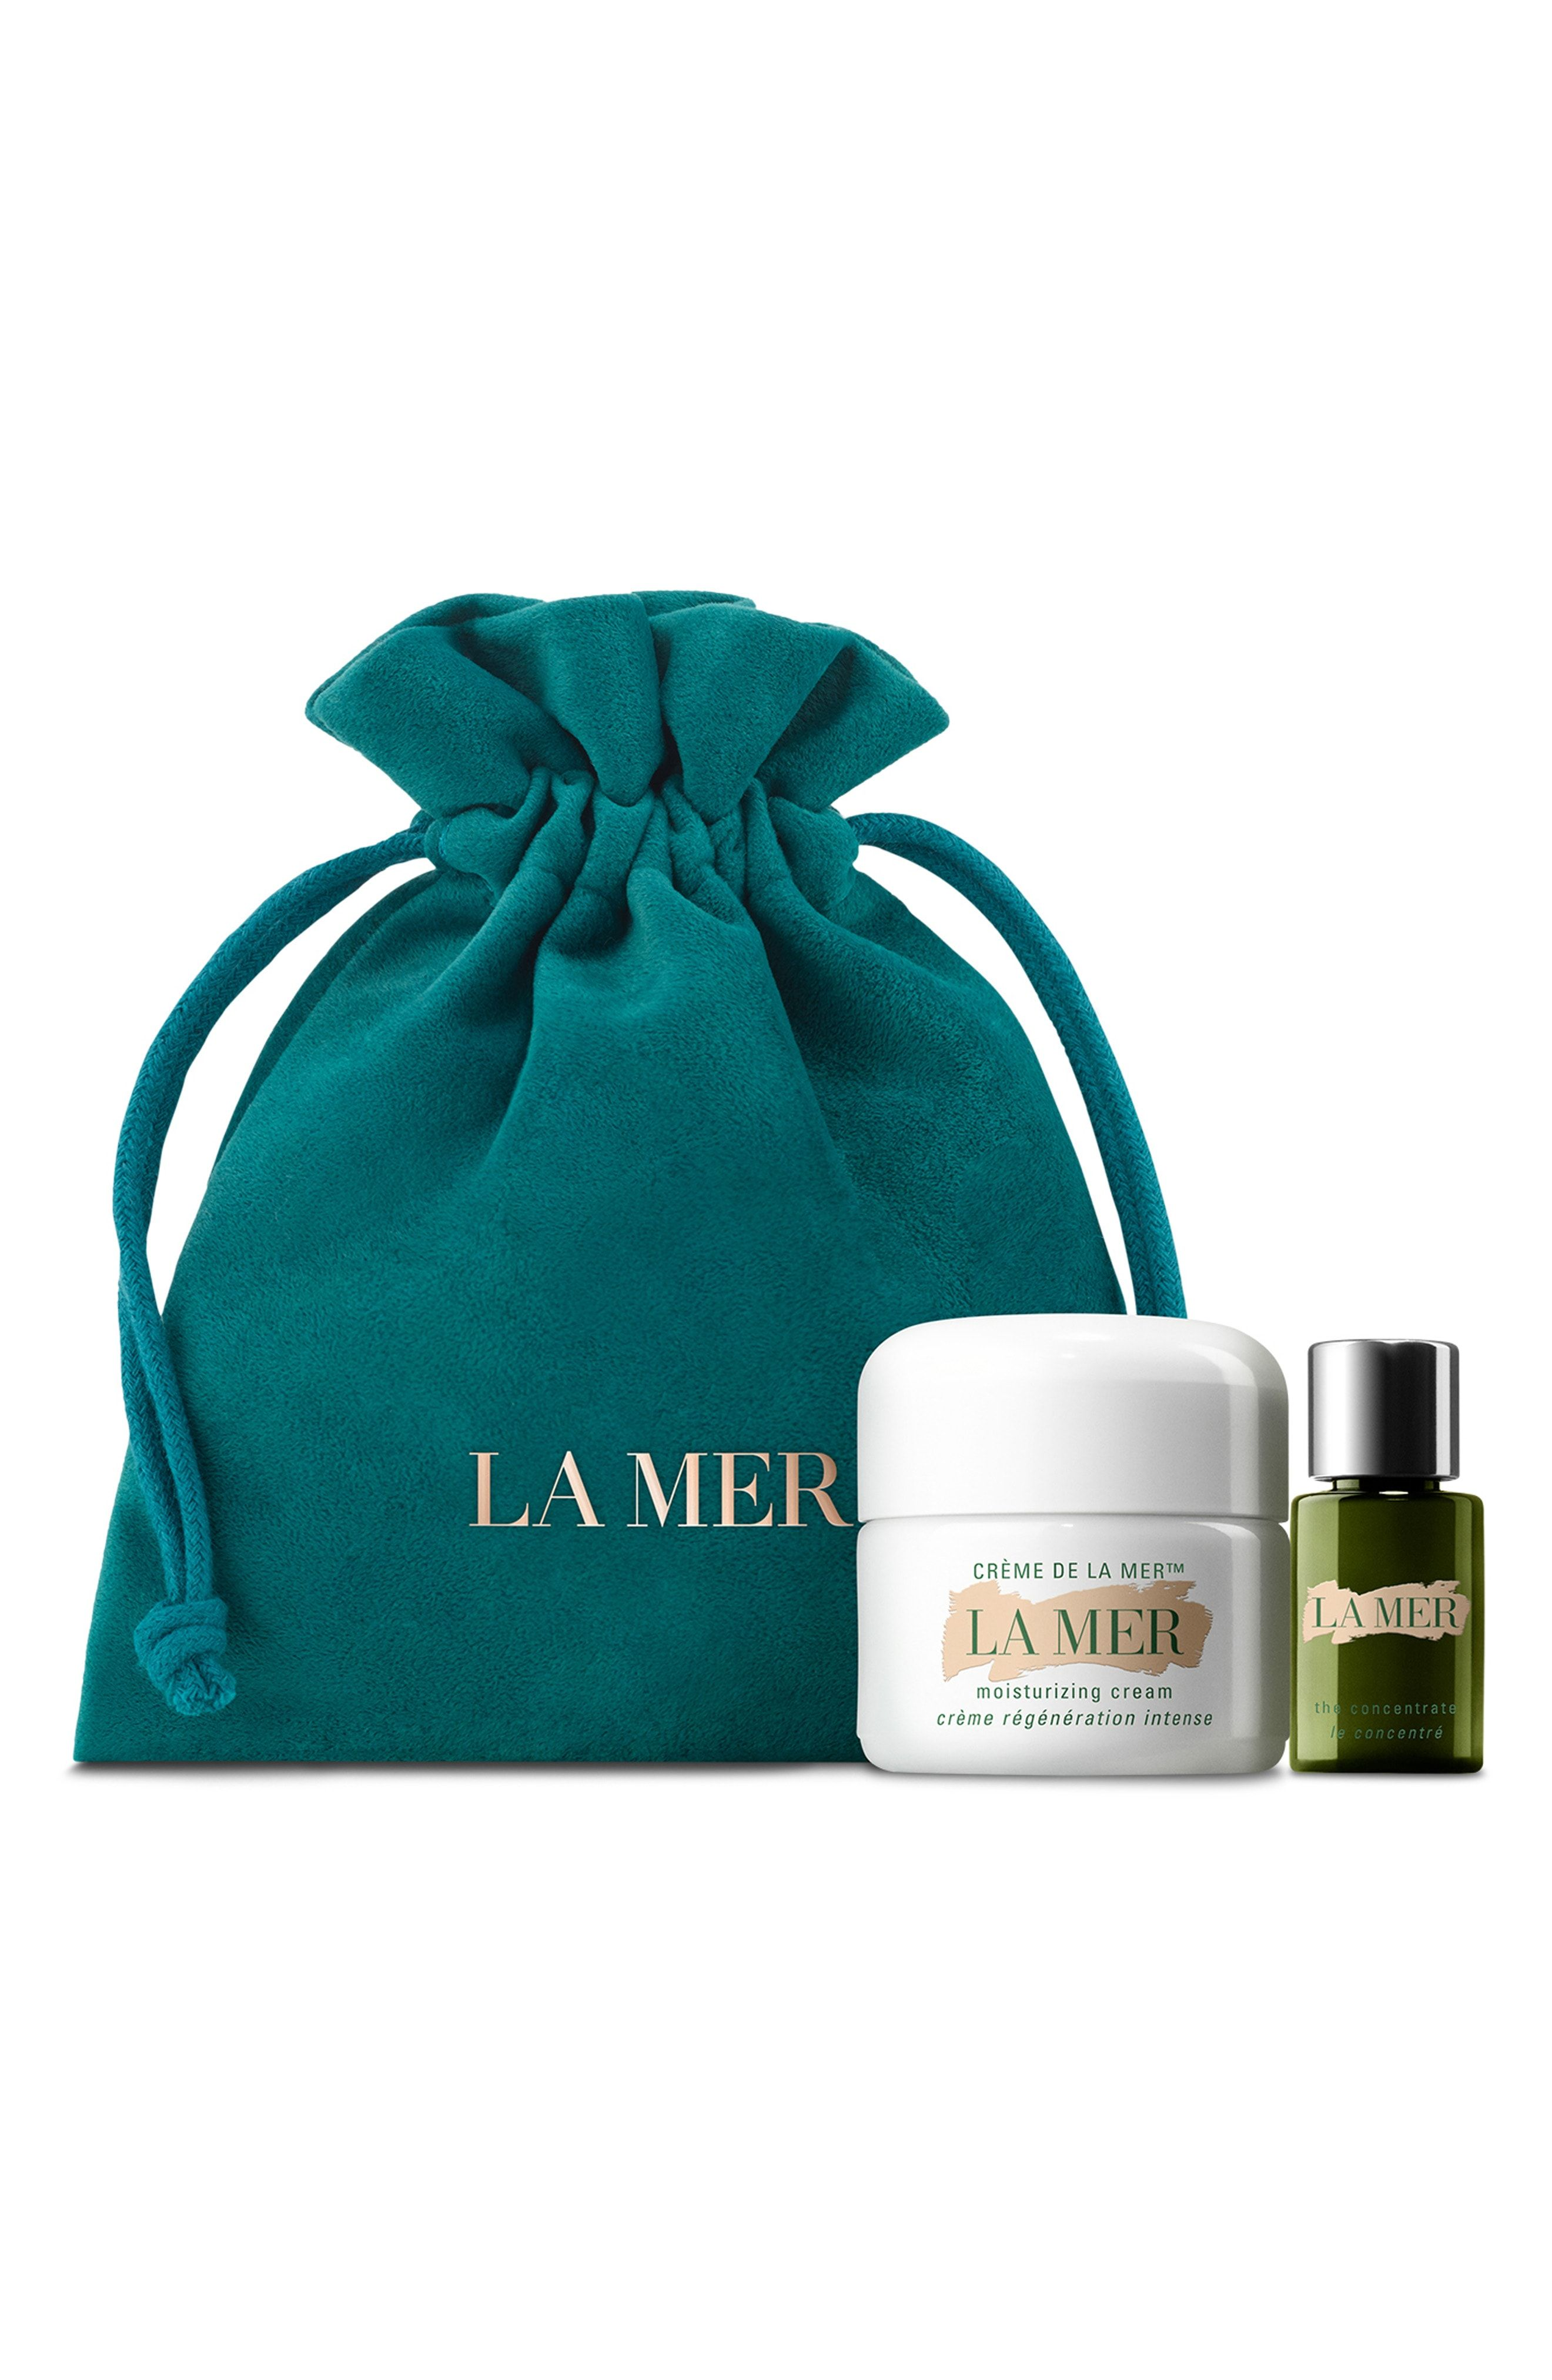 La Mer The Mini Miracle Set ($148 Value) GIFT UNDER $200 + gift with purchase. #jomalone#wintergiftguide #giftguide #giftforfriend #makeuptips # ...